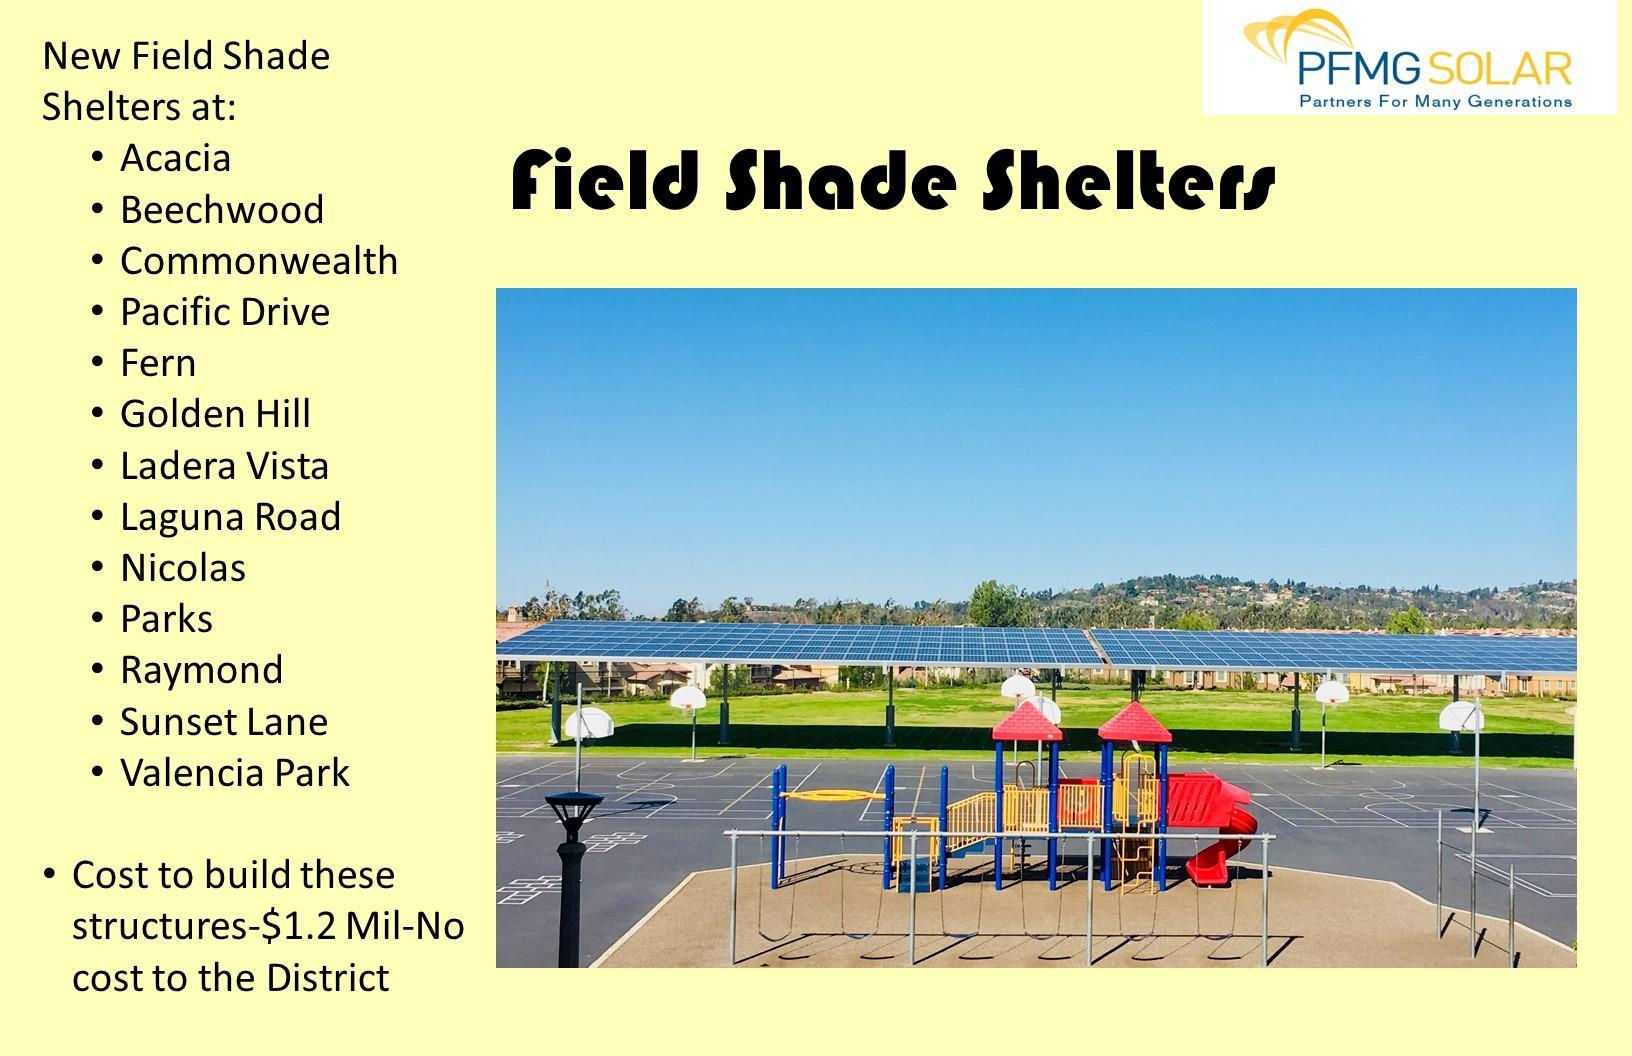 Field Shade Shelters